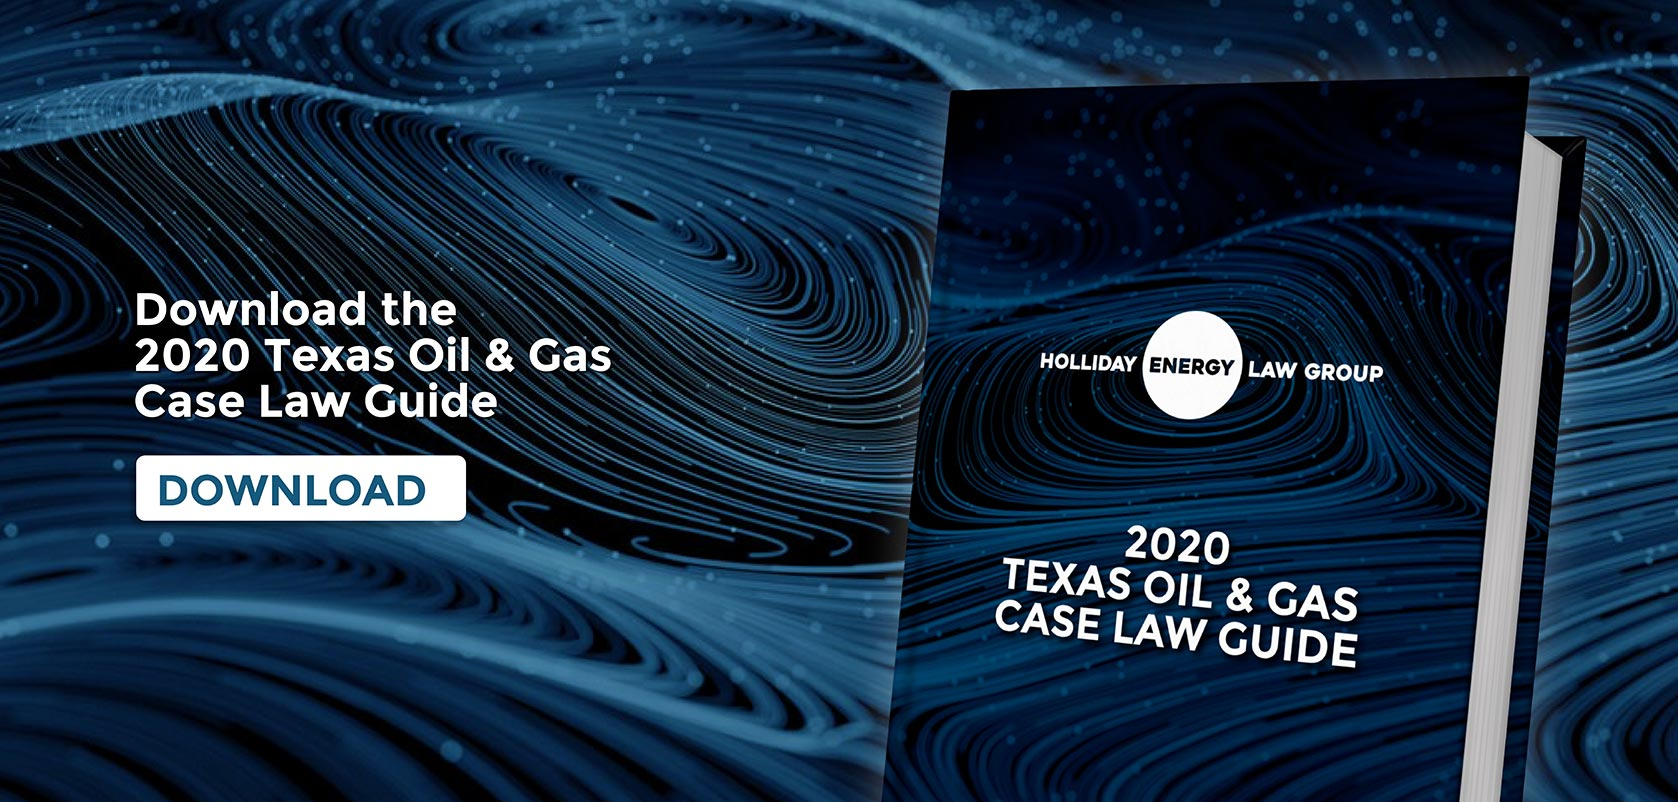 2020 Texas Oil & Gas Case Law Guide